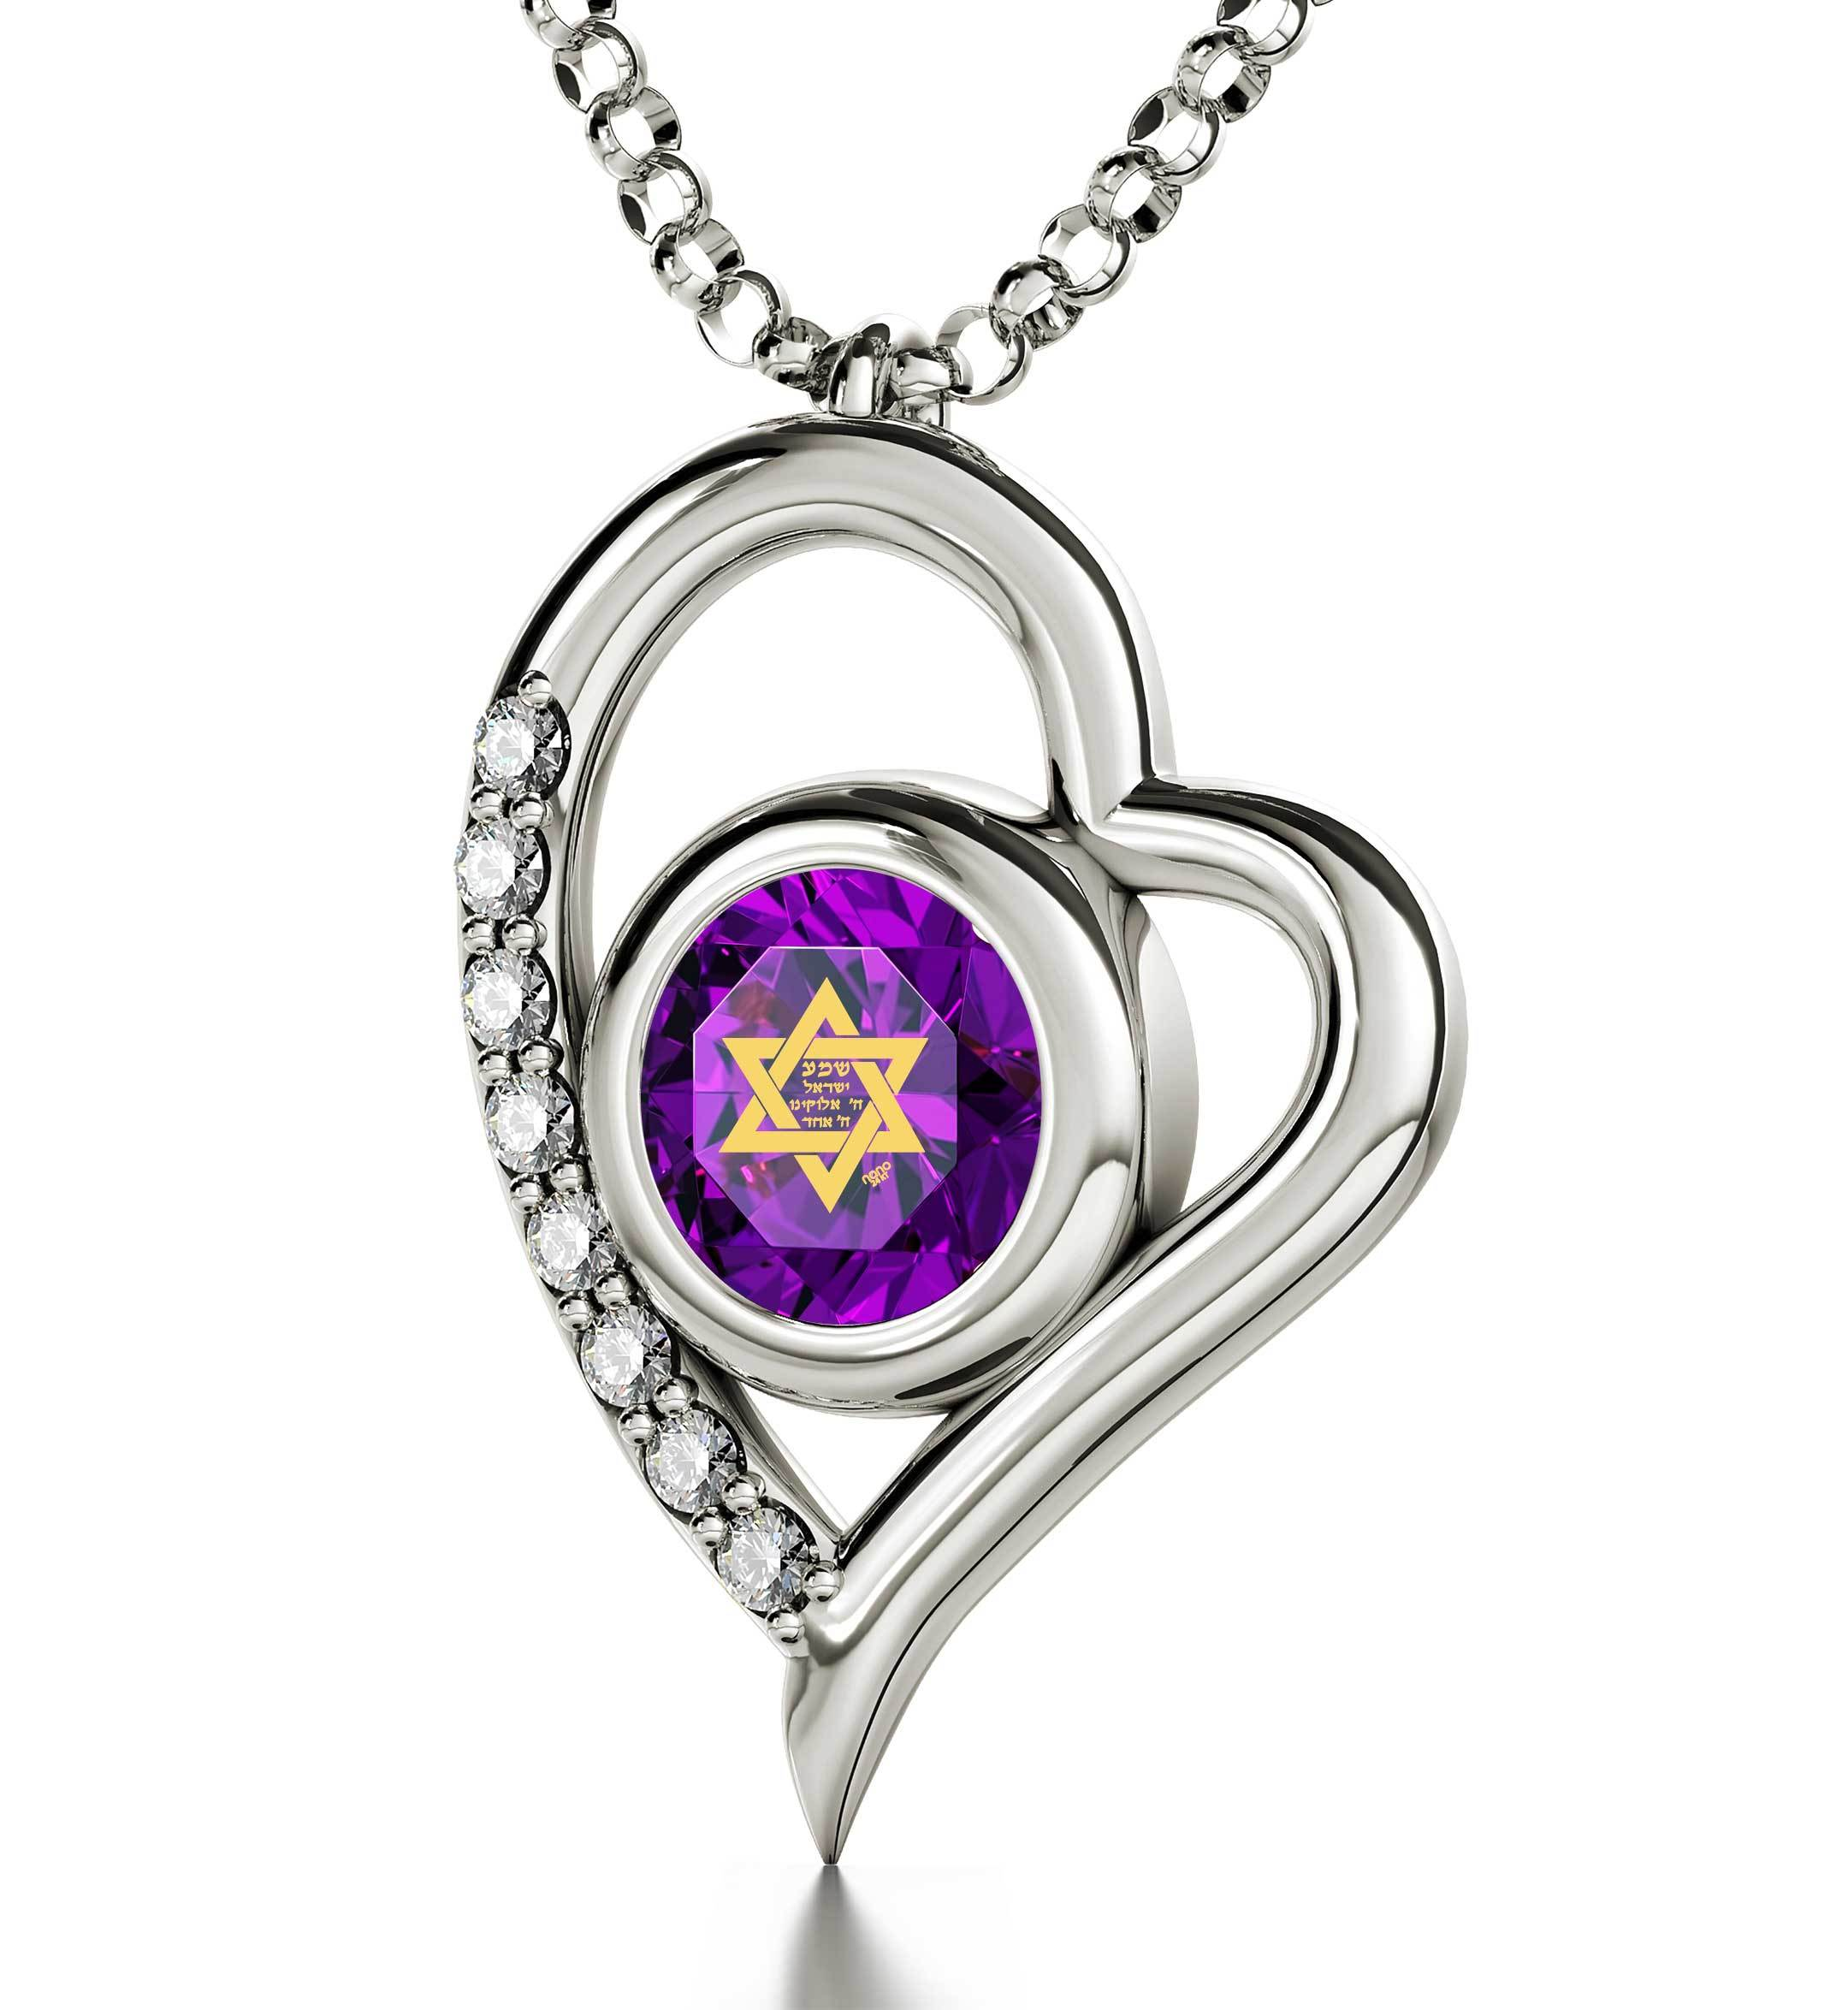 """Shema Yisrael"" Engraved in 24k, Israeli Jewelry with Heart Shaped Pendant, Jewish Gifts, Religious Necklaces"